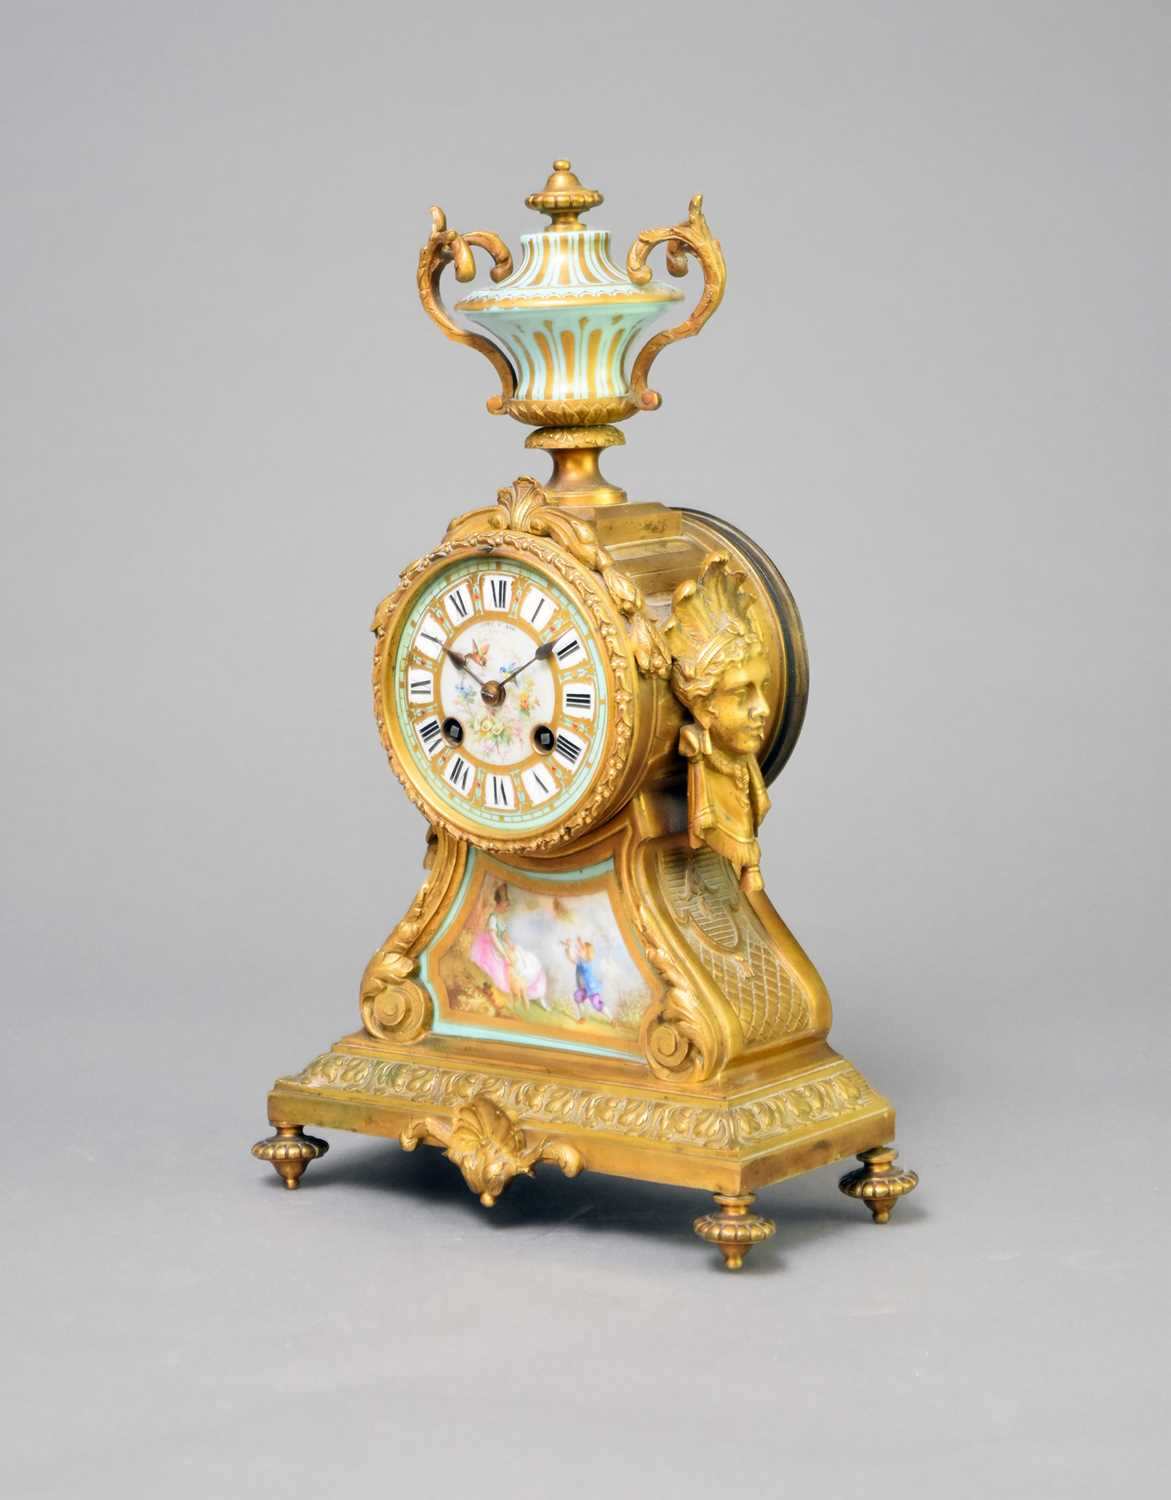 A late 19th century French, porcelain mounted, gilt metal mantel clock